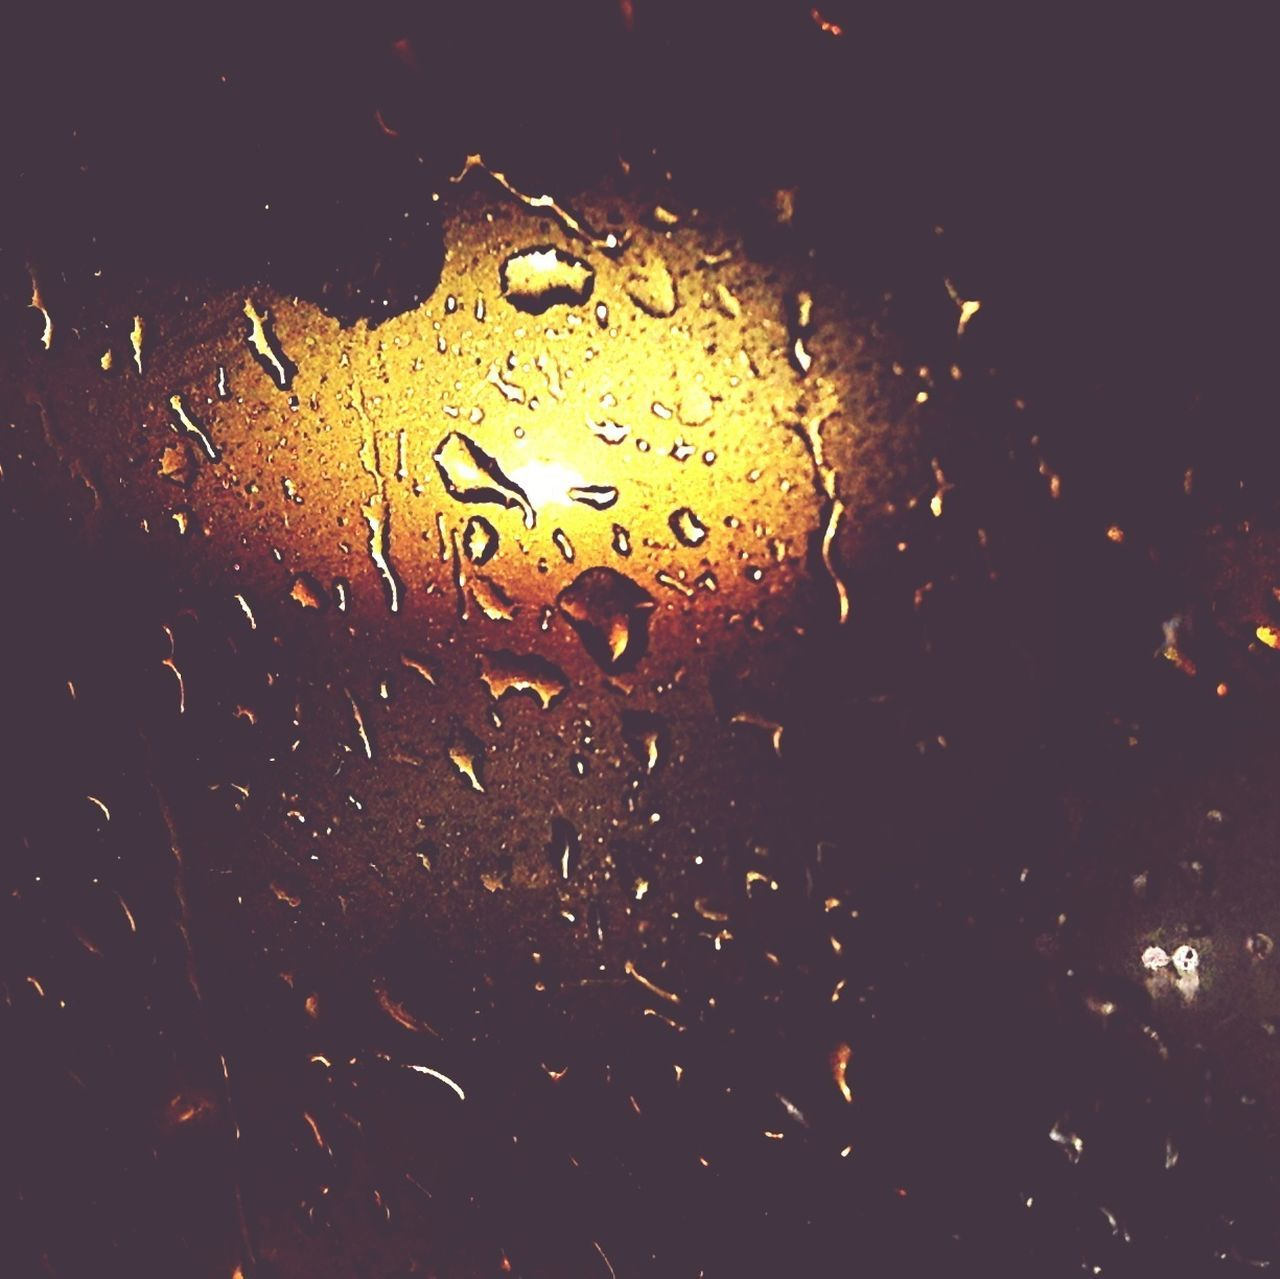 drop, wet, water, no people, raindrop, close-up, night, indoors, illuminated, backgrounds, black background, nature